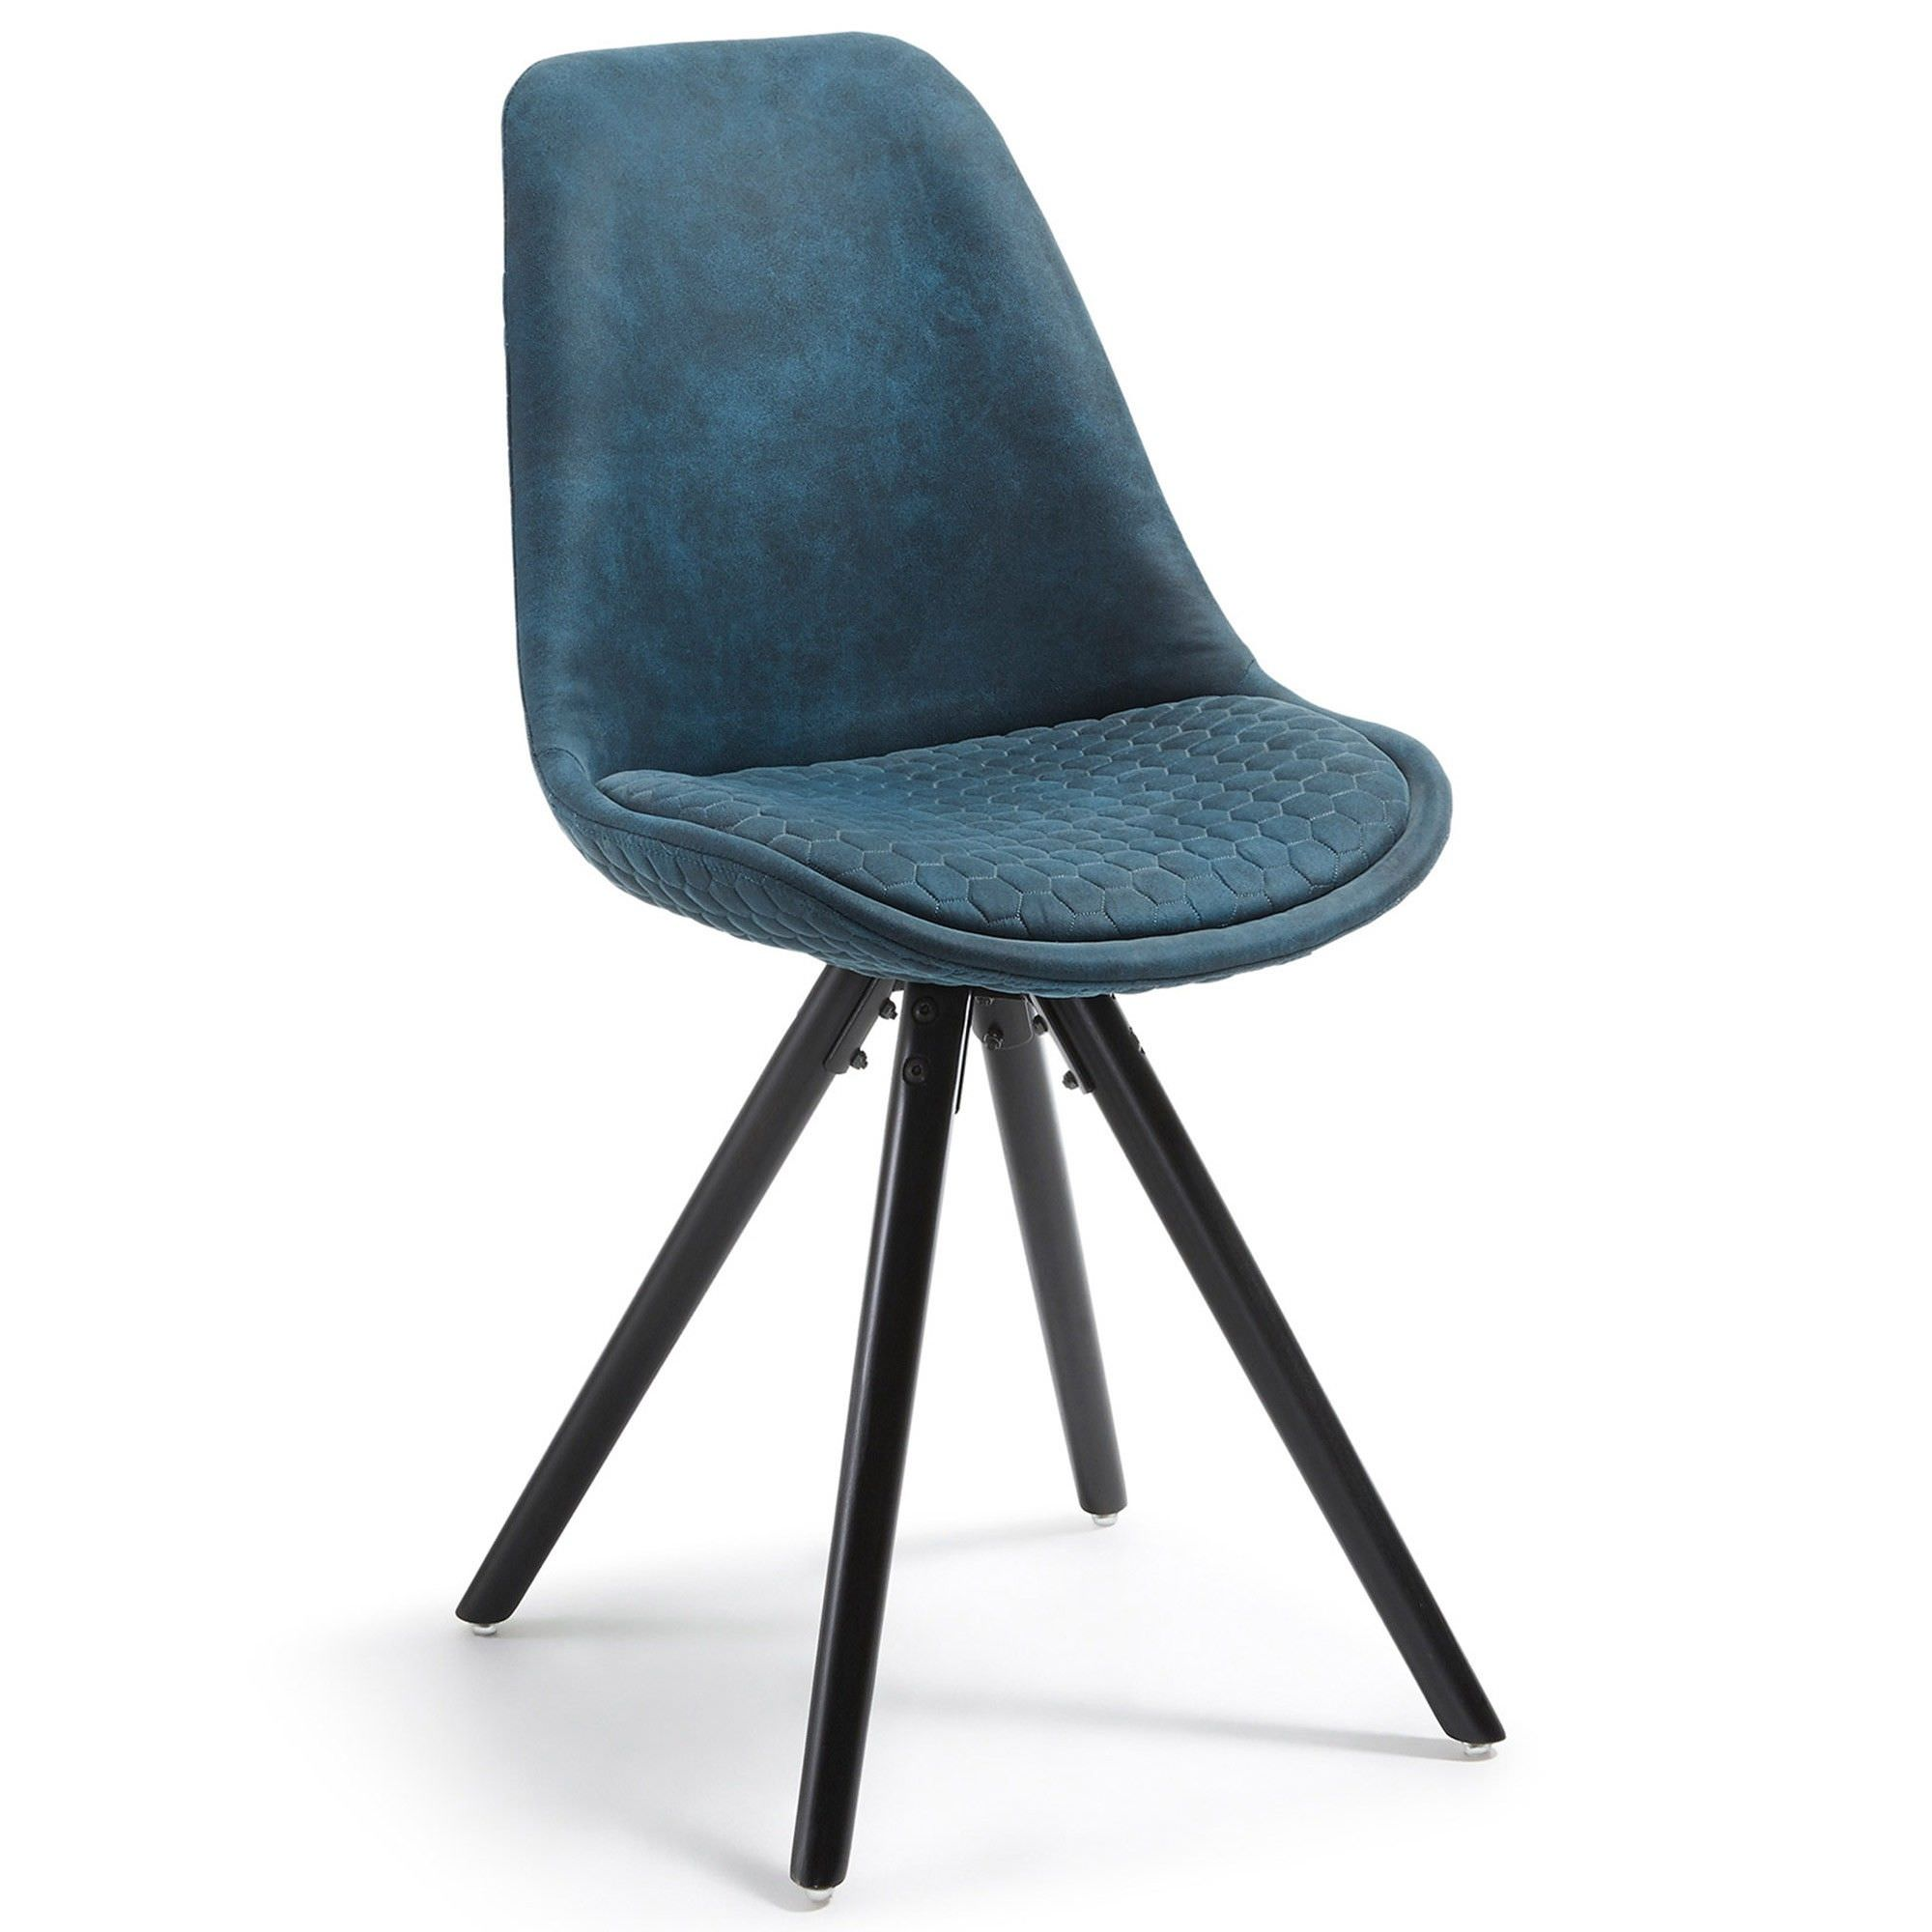 Lakota Fabric Dining Chair, Timber Leg, Blue / Black